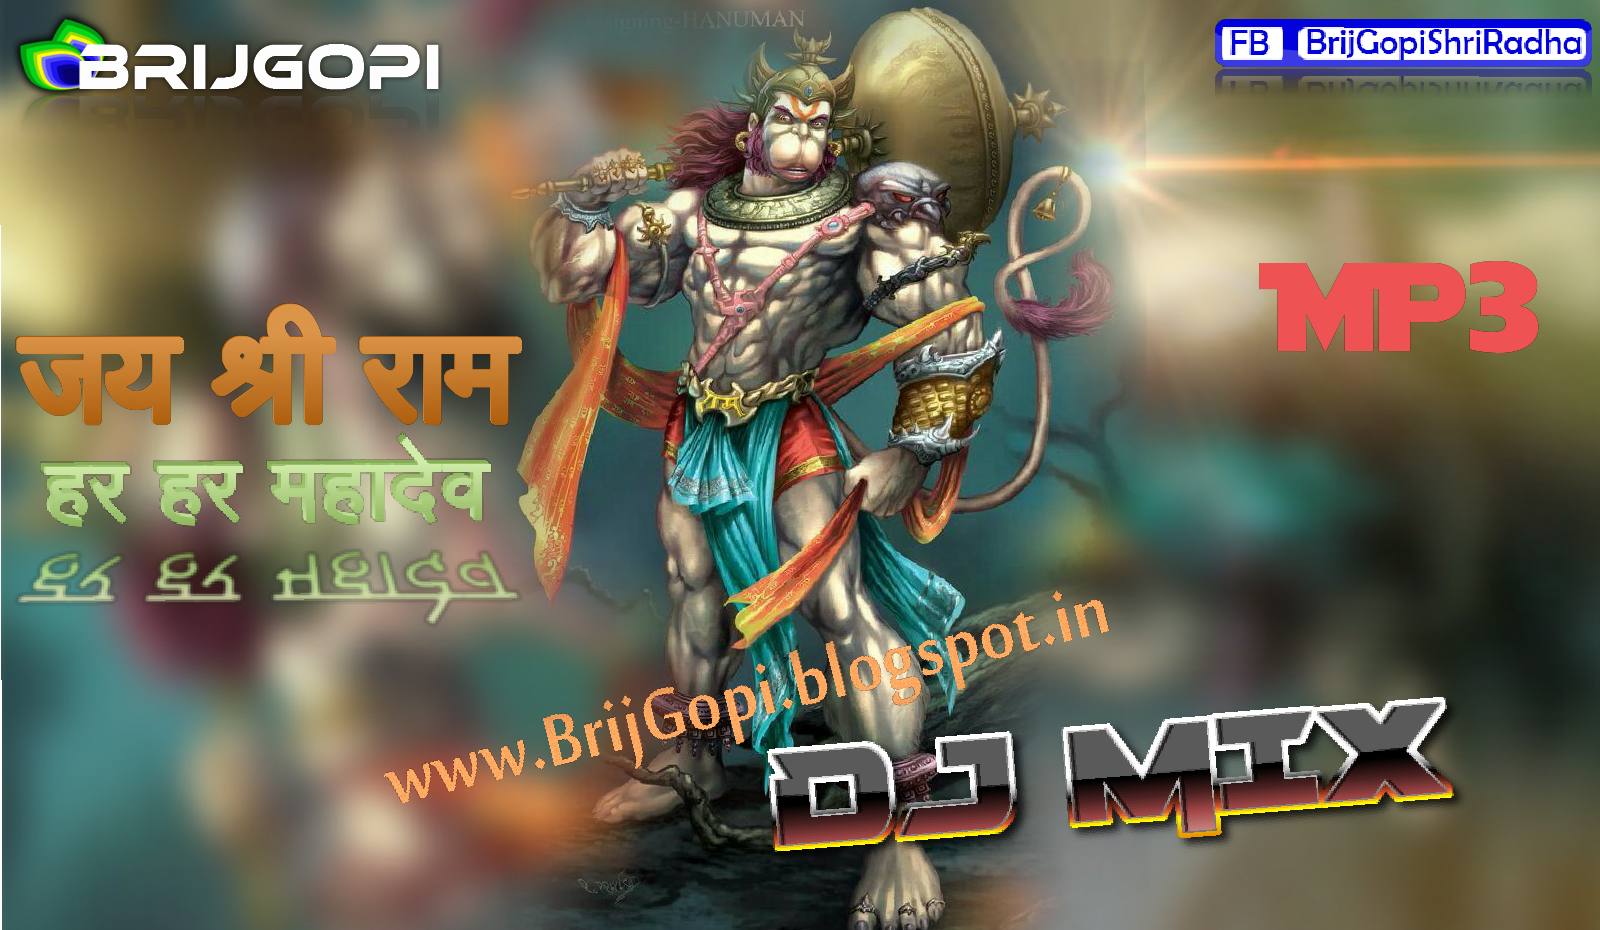 jai shri ram dj remix song free download